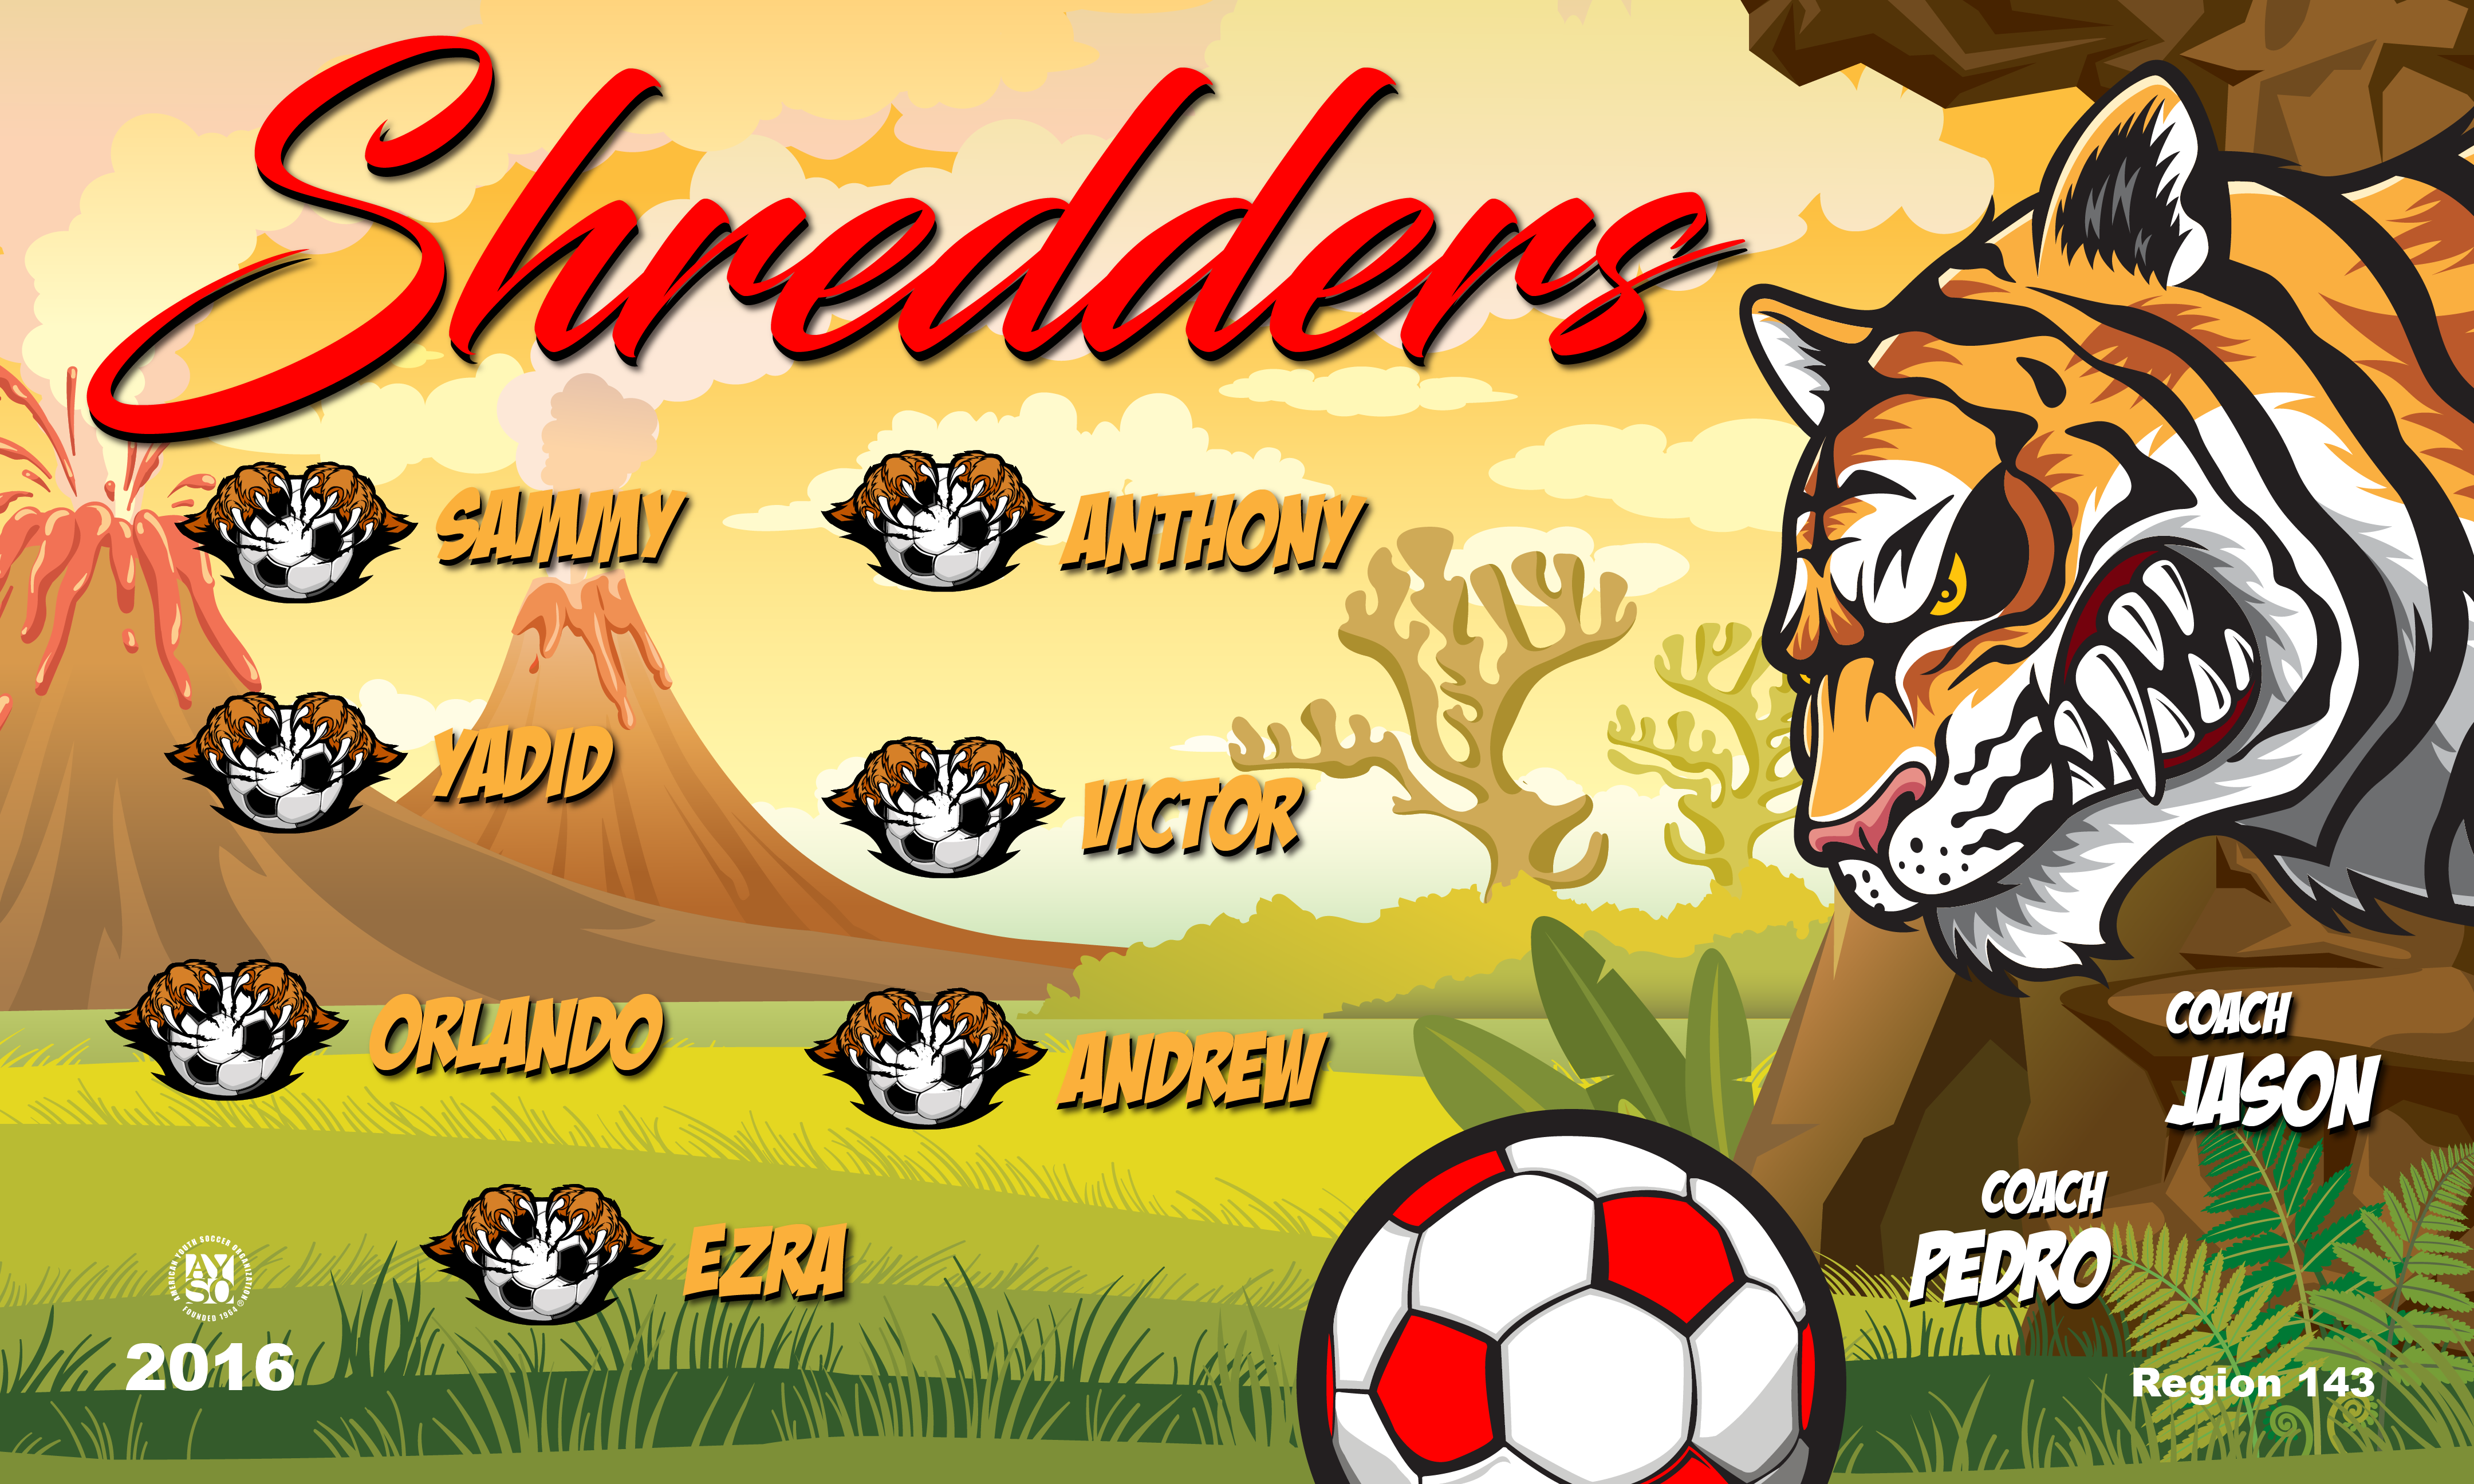 B2284 The Shredders 3x5 Banner